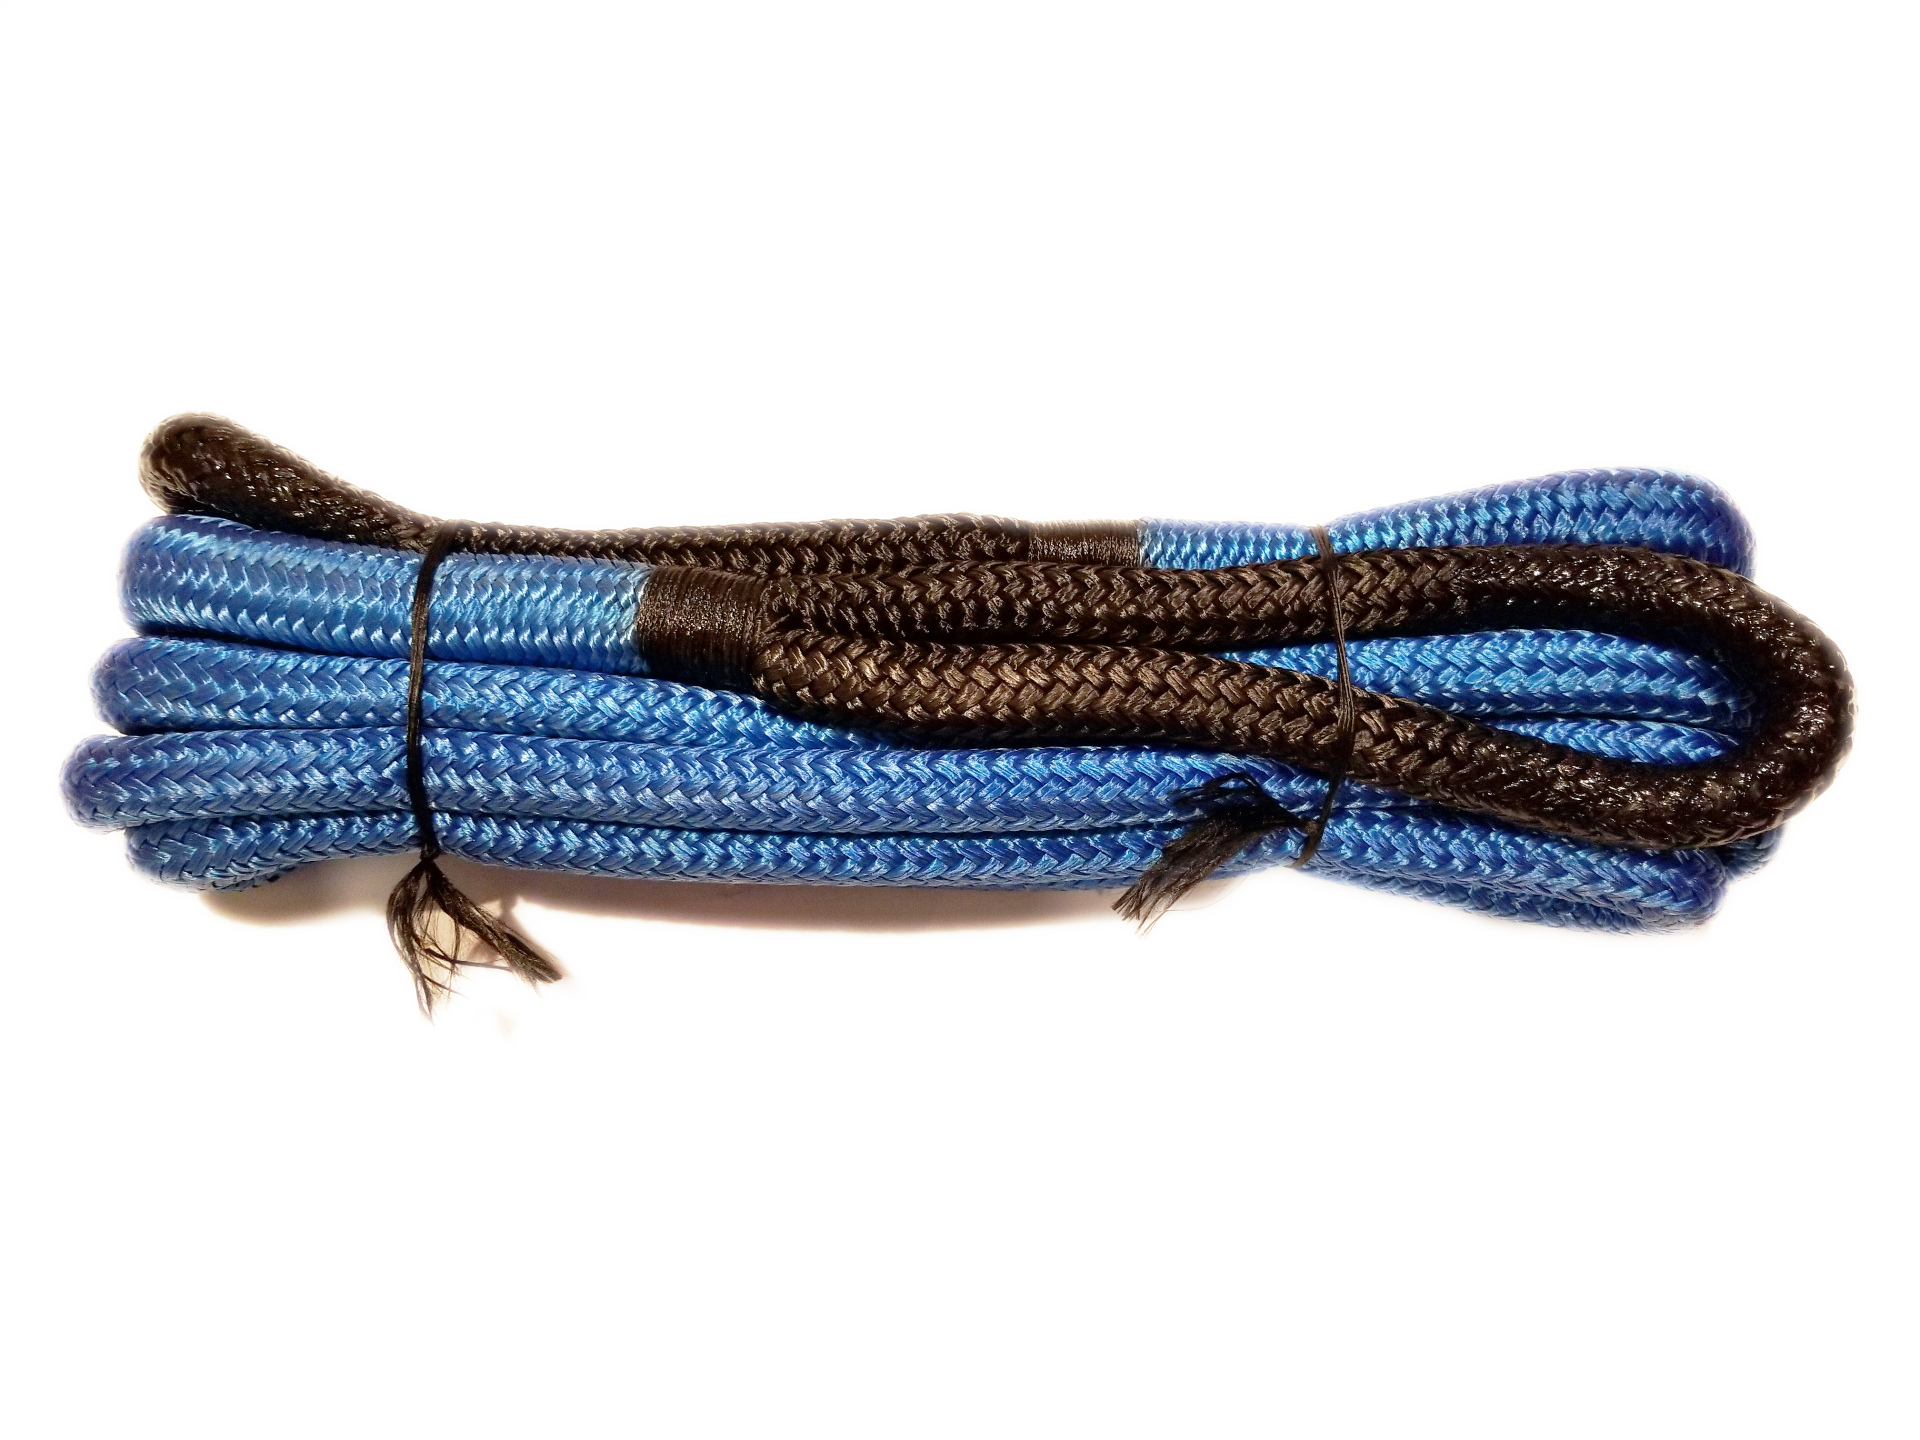 3/4 X 20 Kinetic Rope Blue with Black